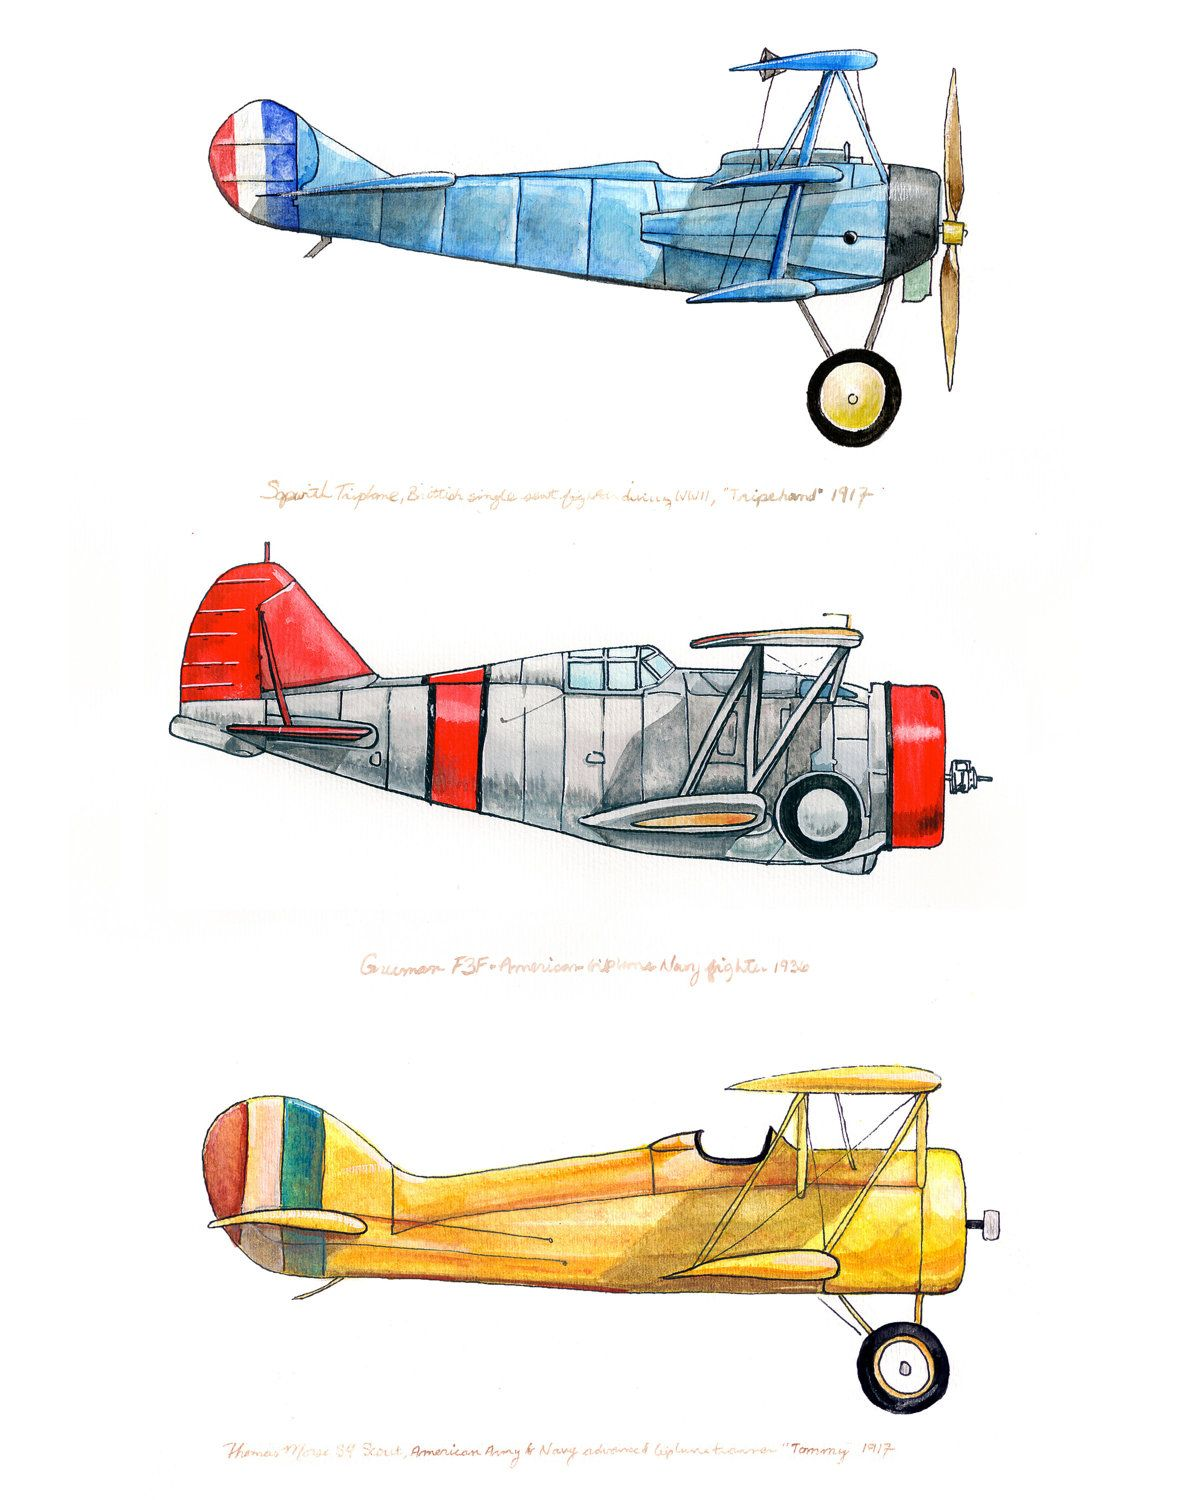 8x10 giclee print featuring three vintage airplanes in red